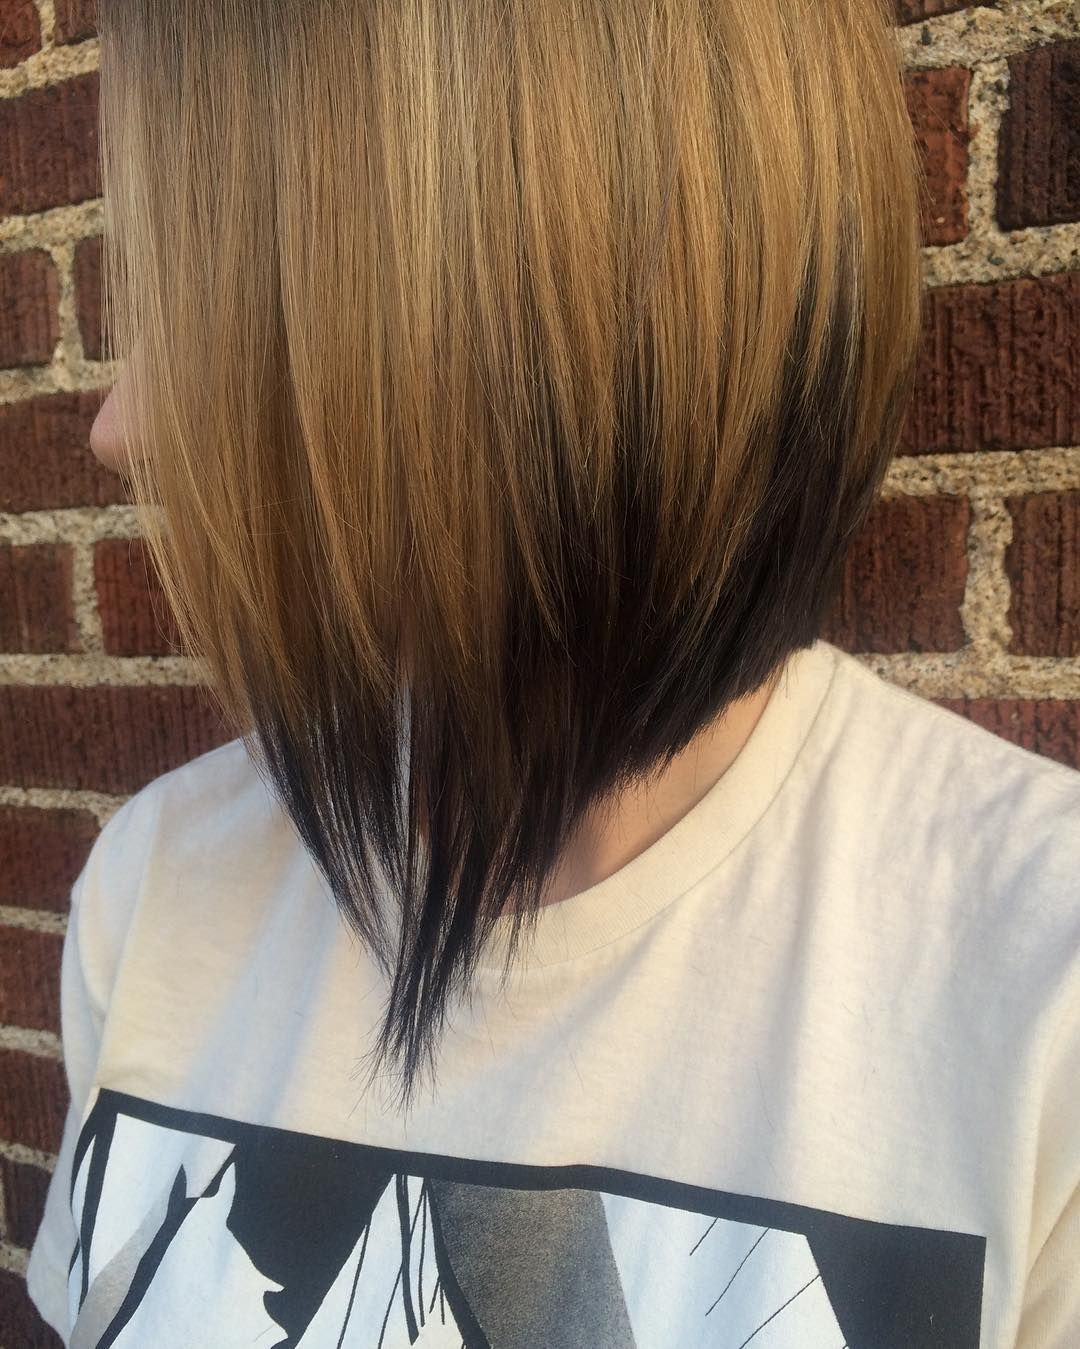 Blonde To Black Ombre For Angled Bob Short Ombre Hair Reverse Ombre Hair Angled Bob Hairstyles